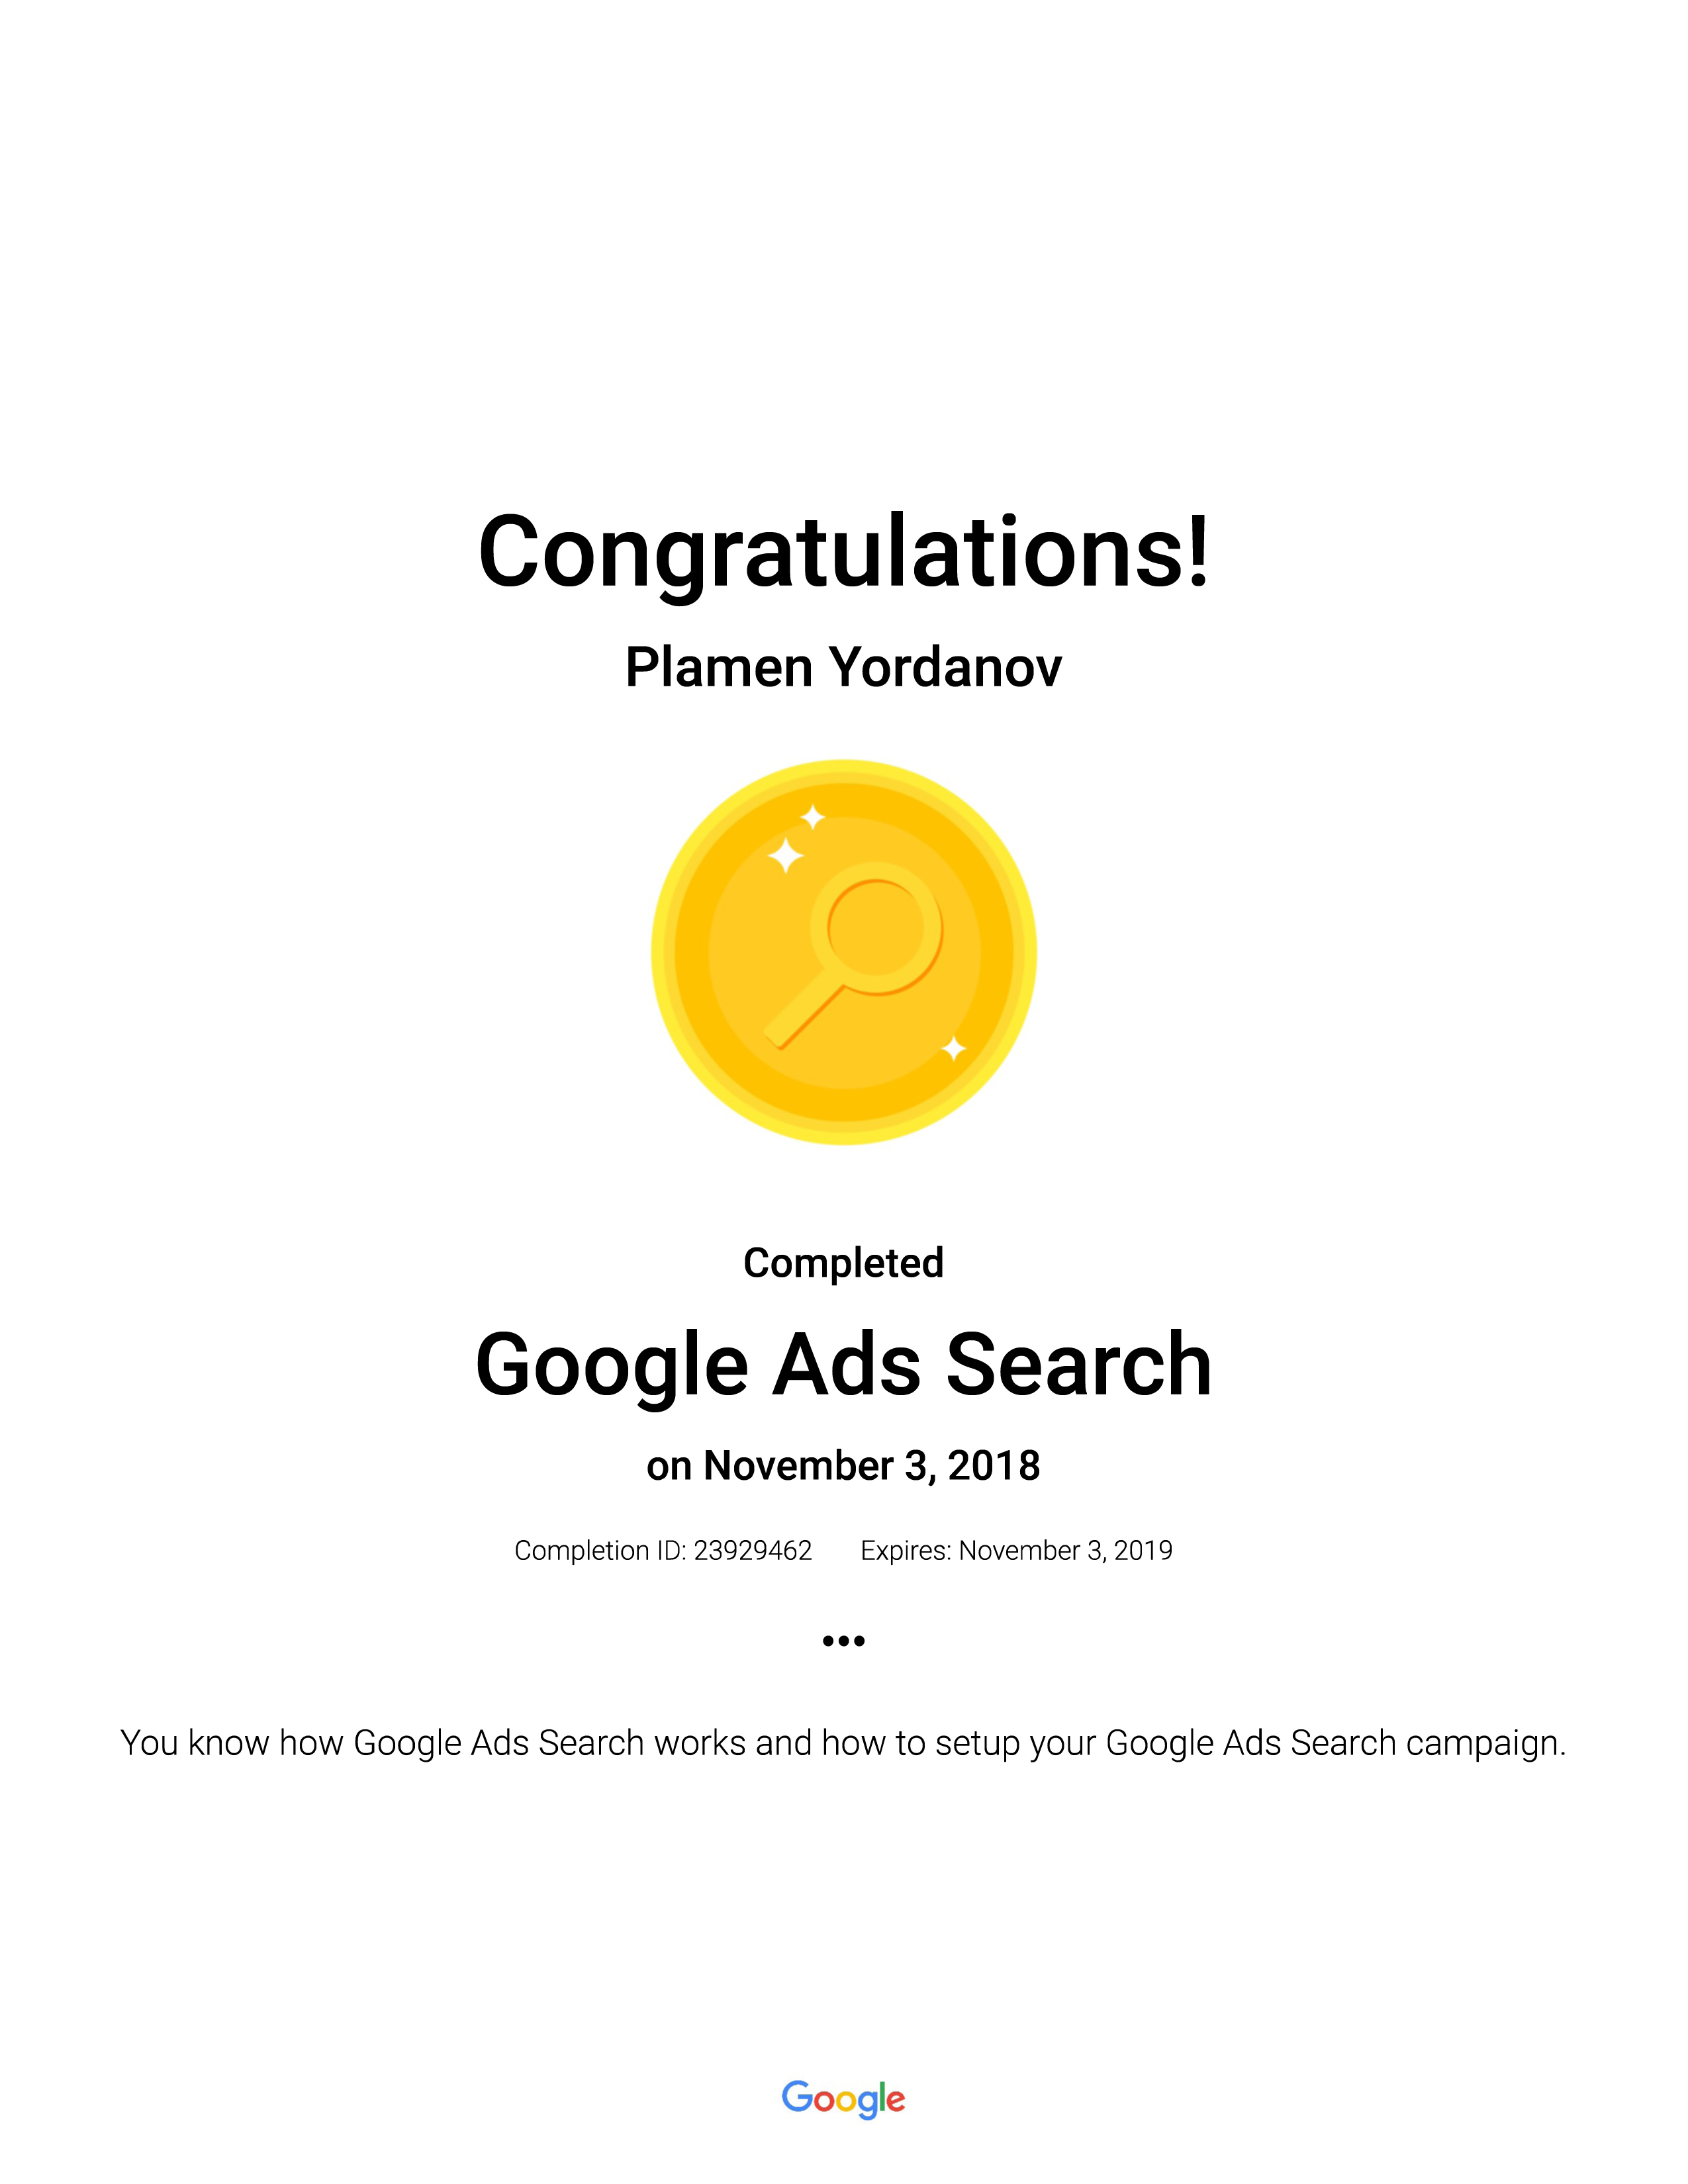 Google Ads Search